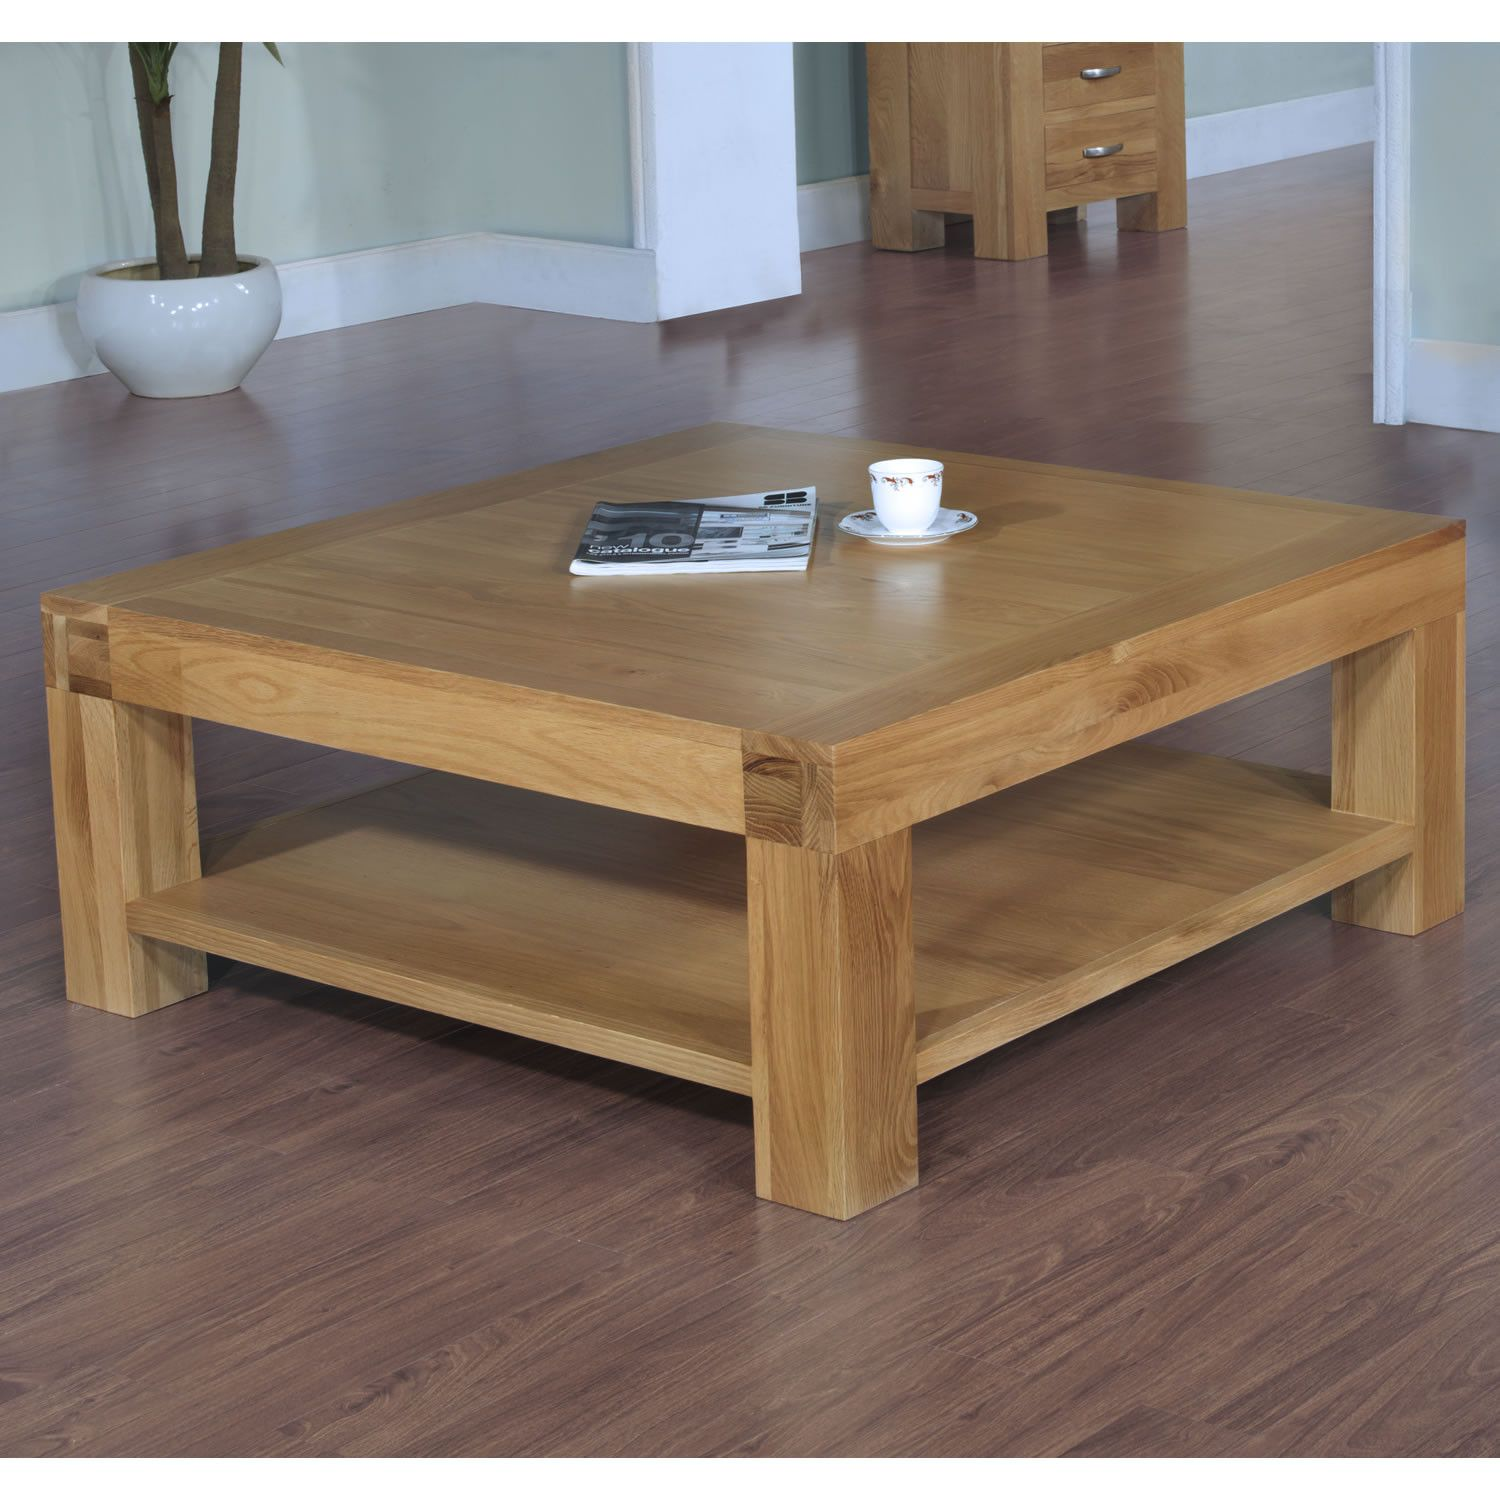 2019 Large Square Dark Wood Coffee Table Americas Best Furniture Check More At Http Www Buzzfo Pine Coffee Table Square Wood Coffee Table Coffee Table Wood [ 1500 x 1500 Pixel ]